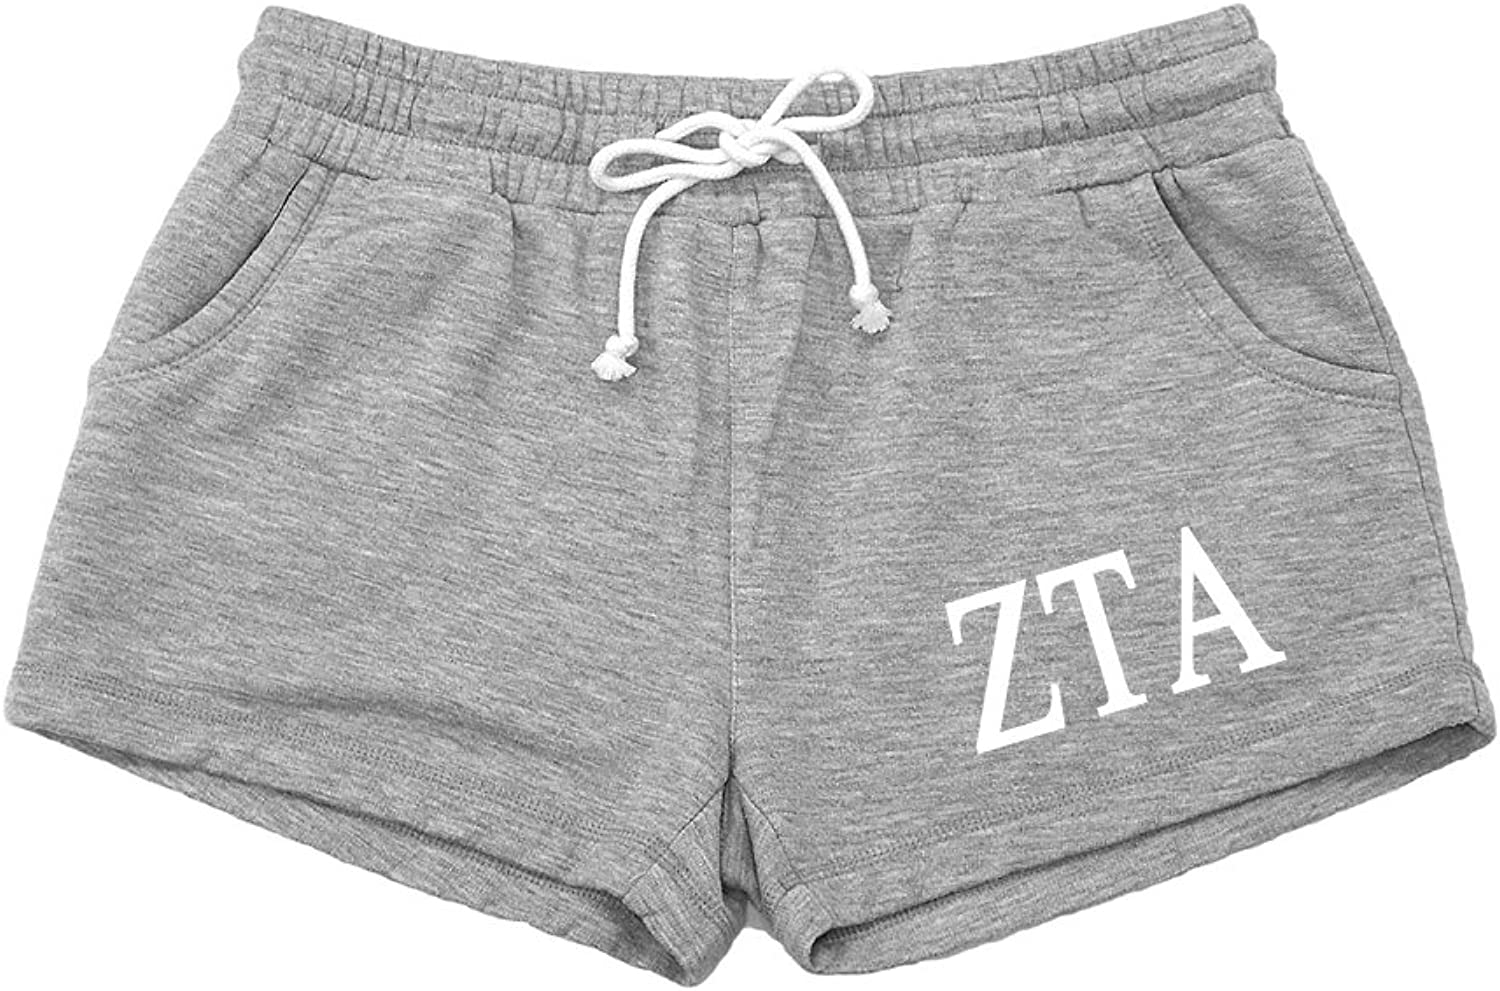 Cotton Sisters Zeta Tau Alpha Rally Shorts